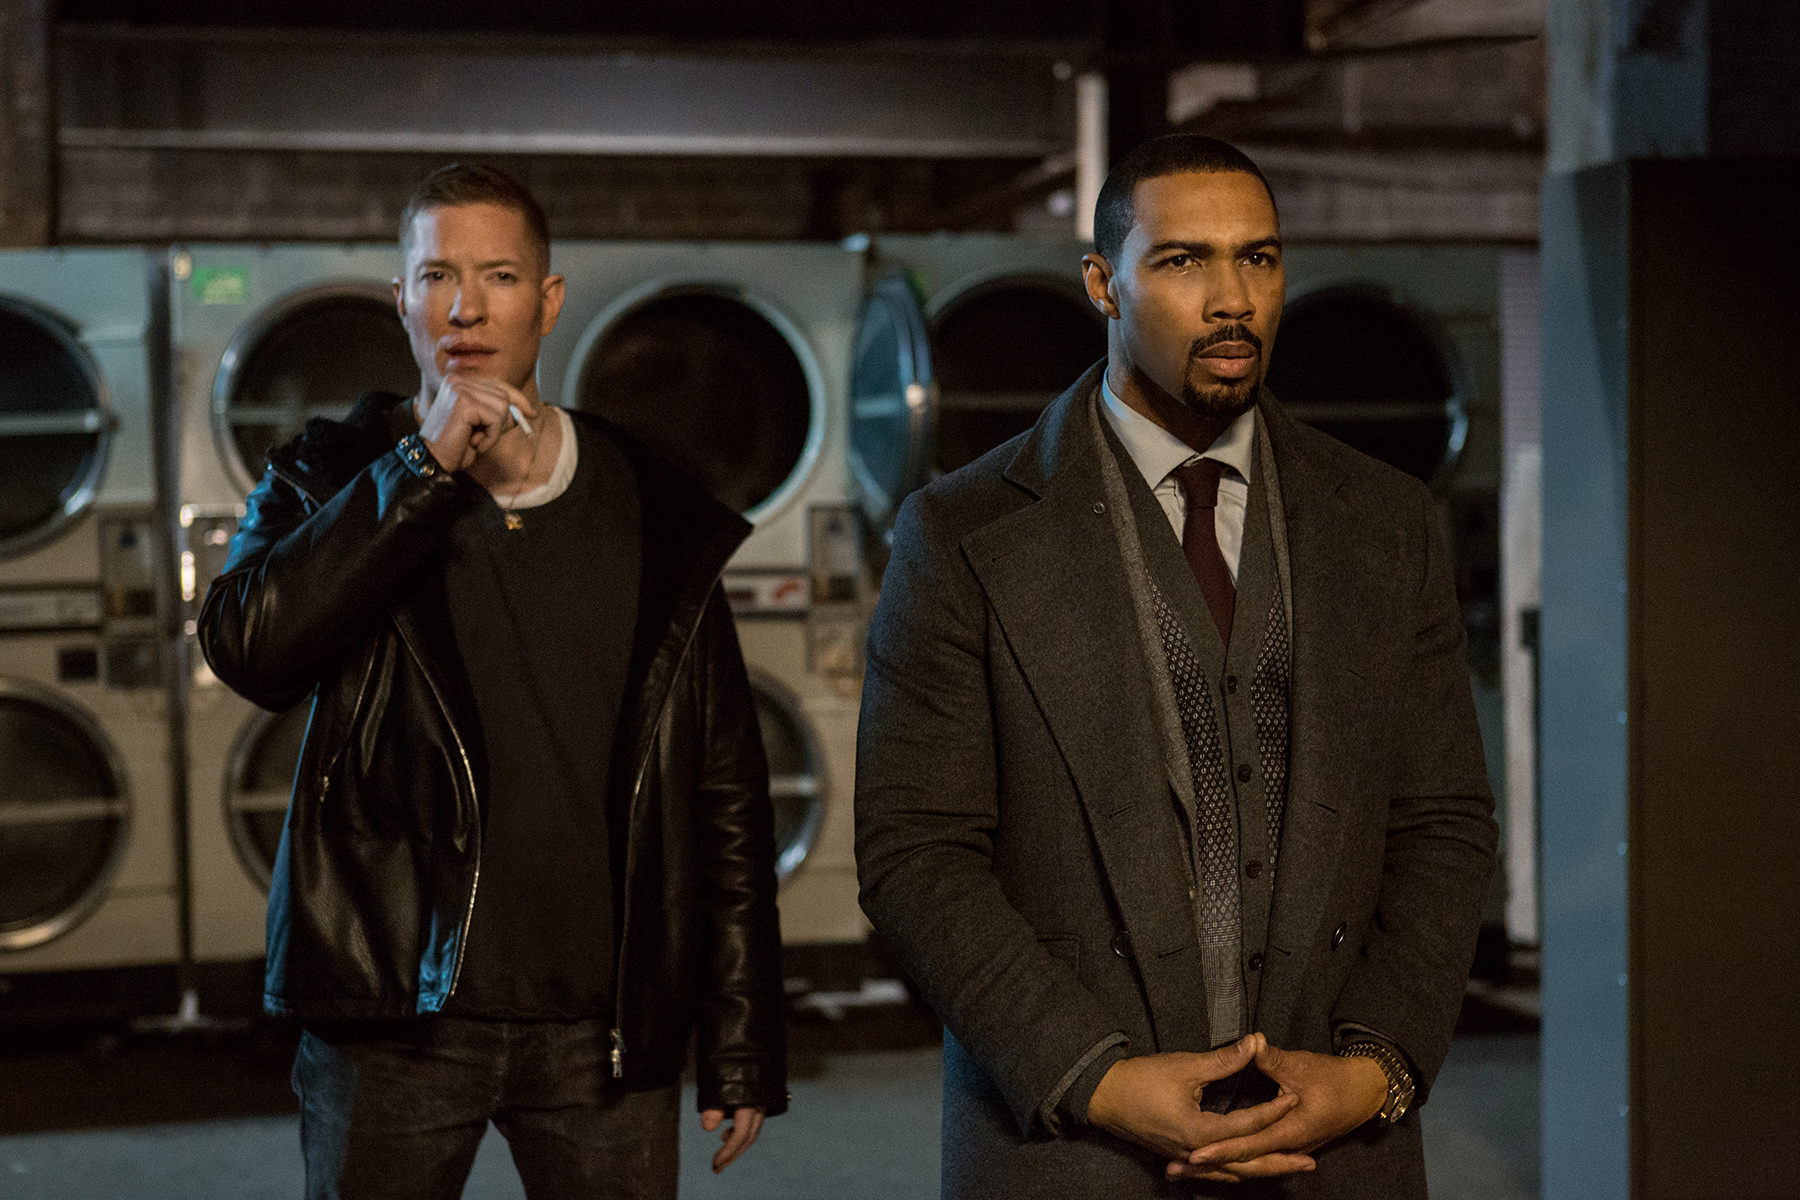 Joseph Sikora 39 S Tommy Egan In Power Finally A White Guy Who 39 S Not In The Black World To Save